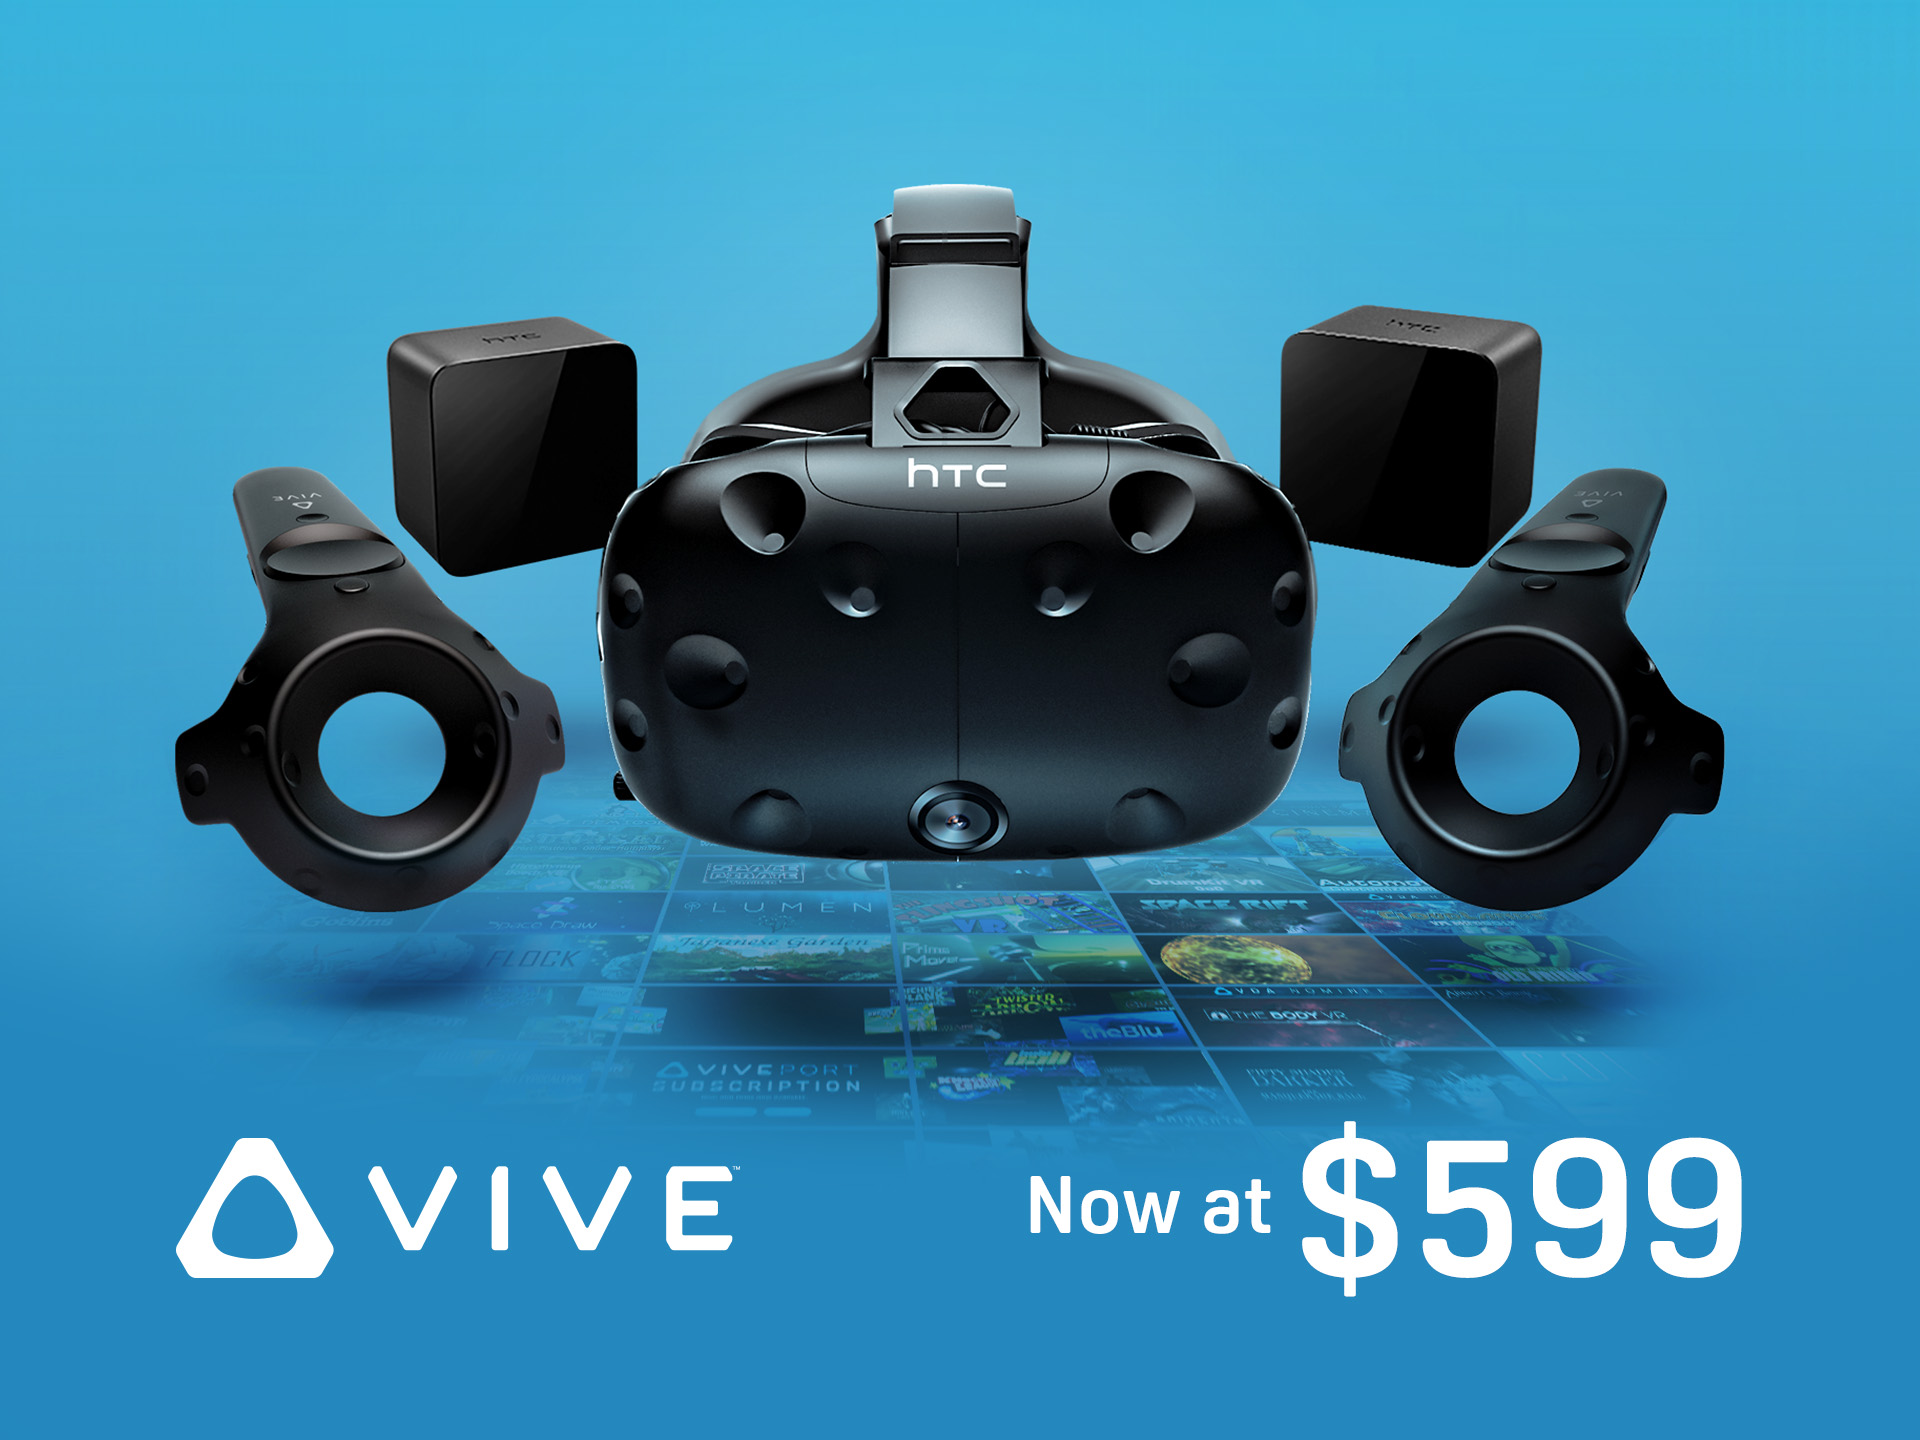 HTC Vive gets substantial price cut from $799 to $599 (£599)